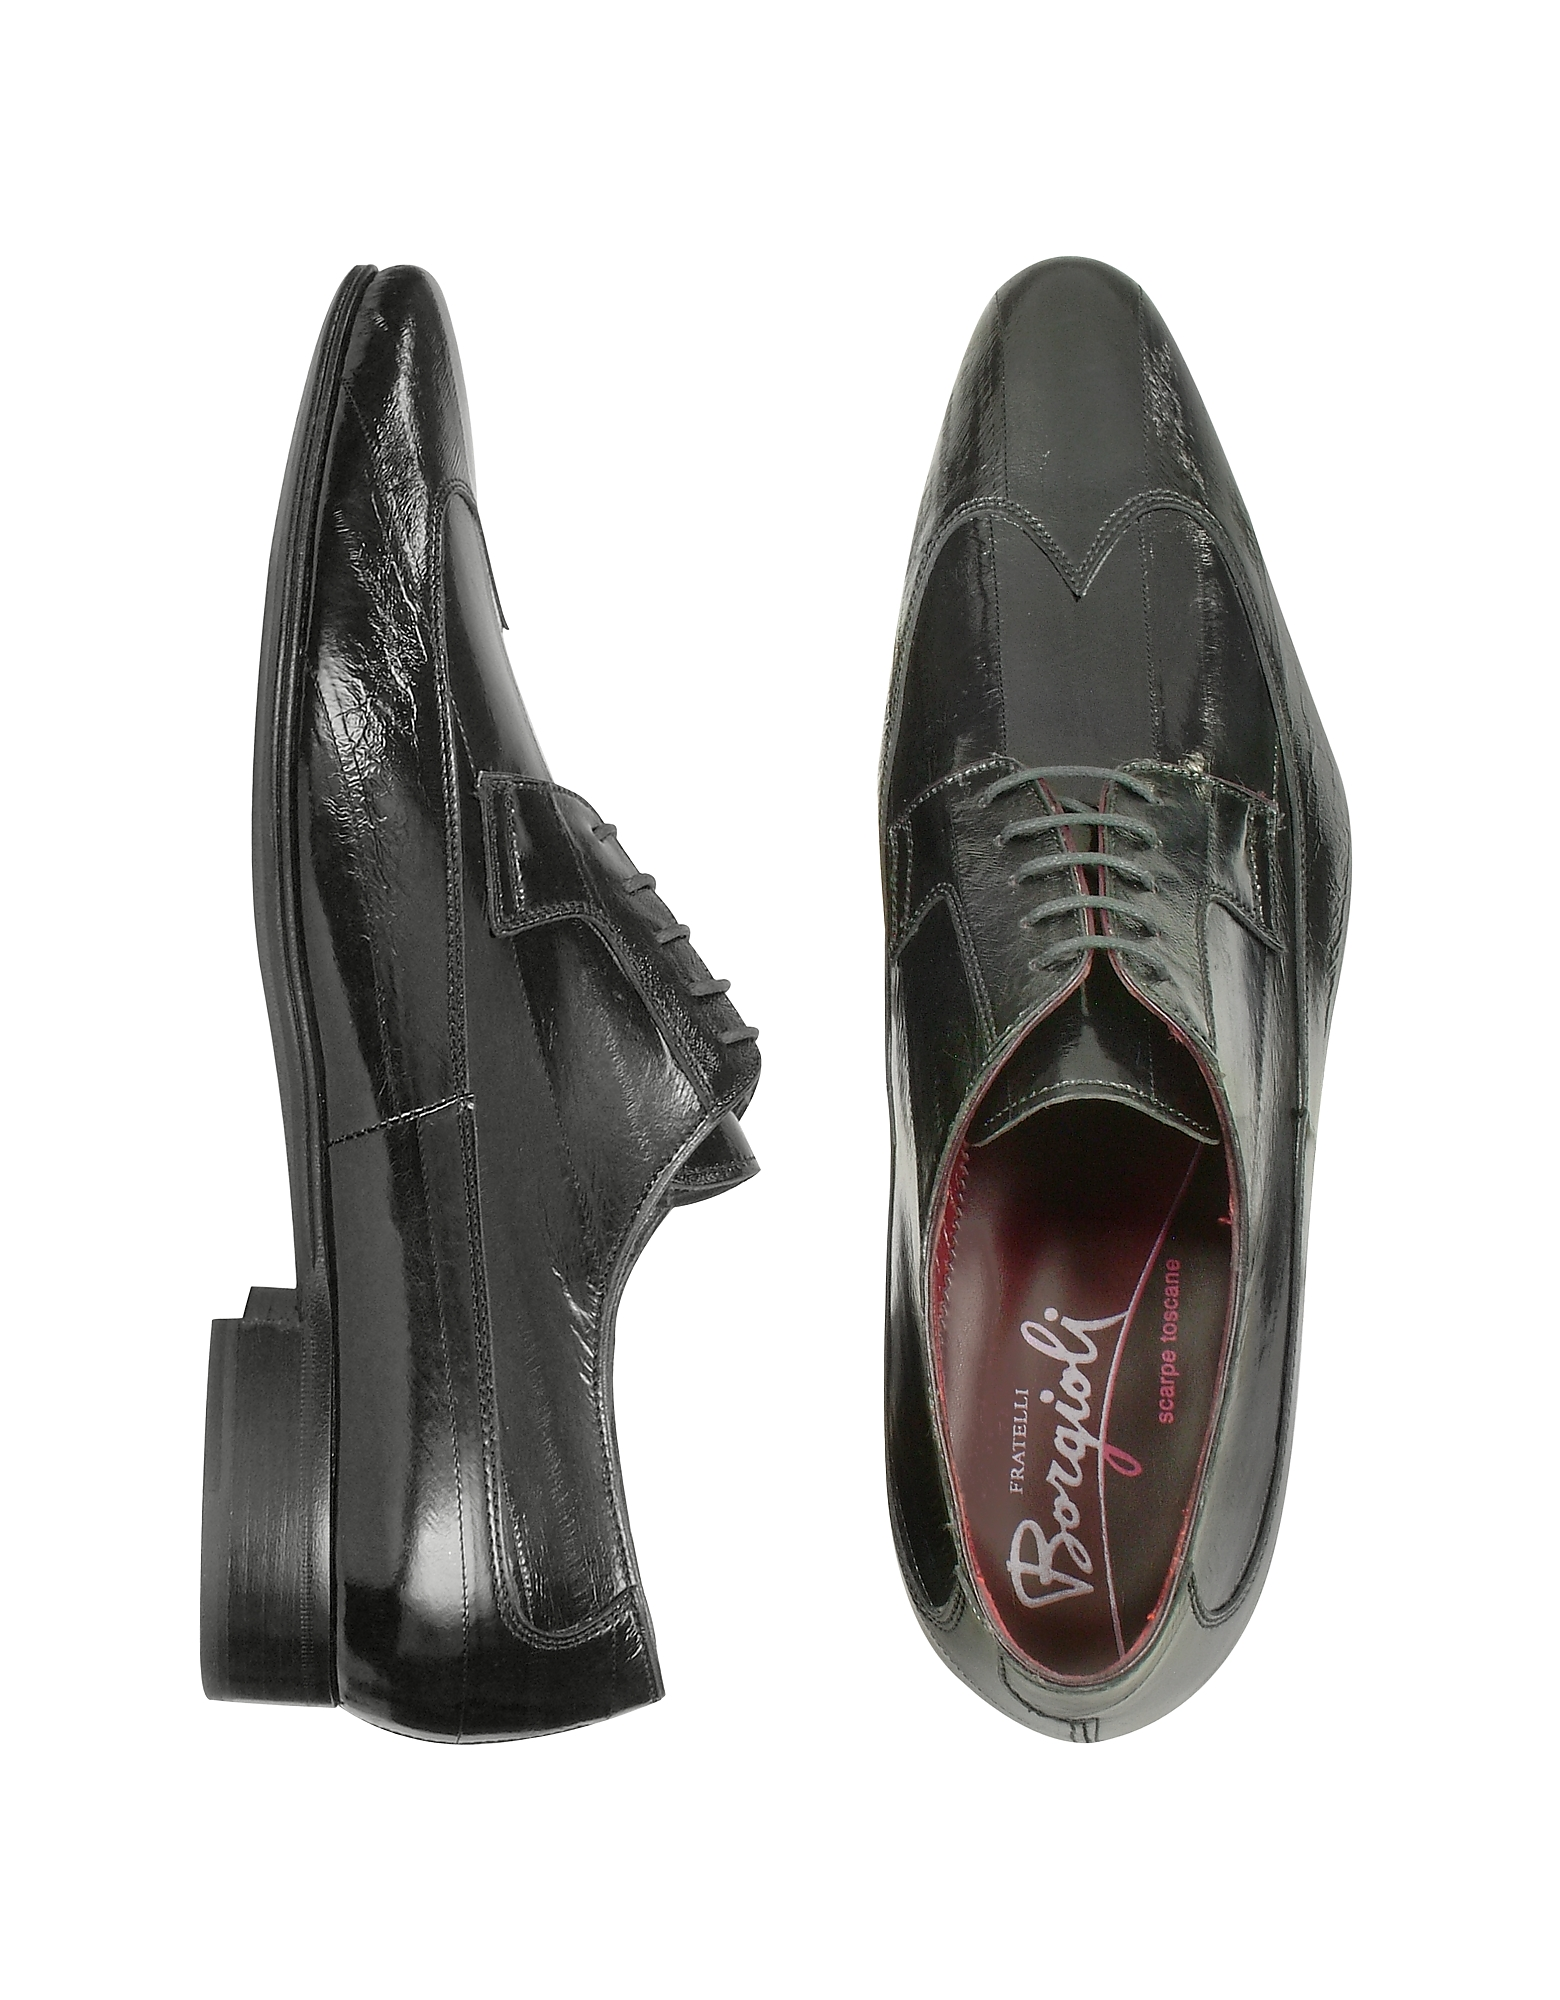 Fratelli Borgioli Shoes, Handmade Black Eel Leather Wingtip Dress Shoes